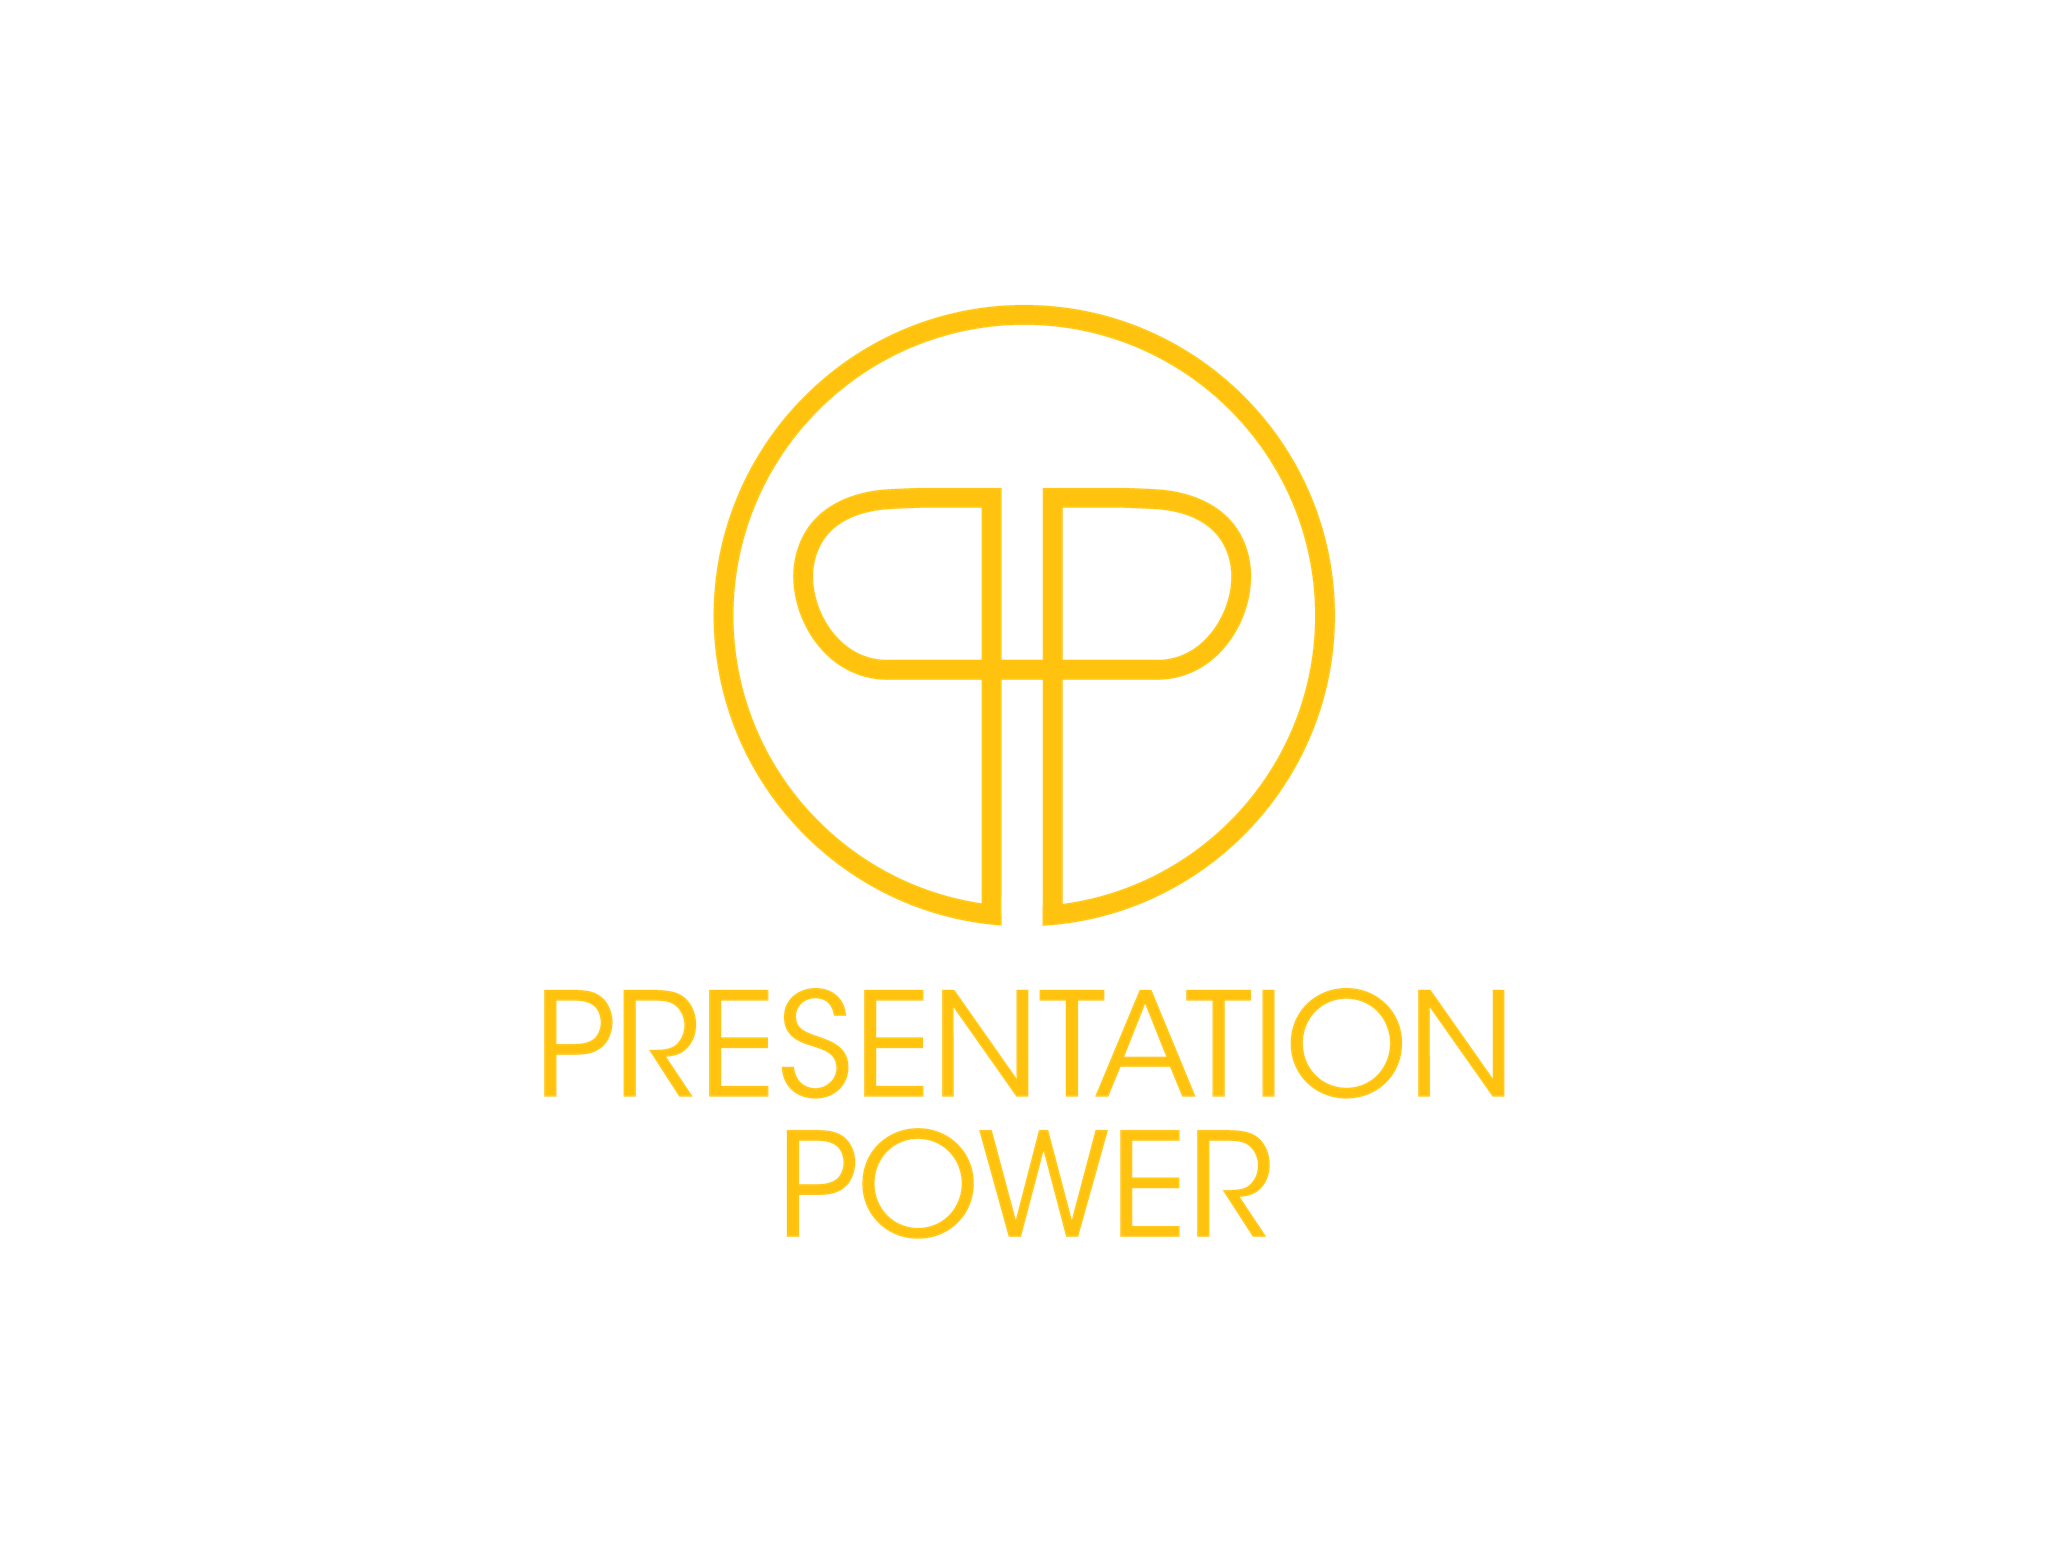 presentation power ethically influence people s decisions